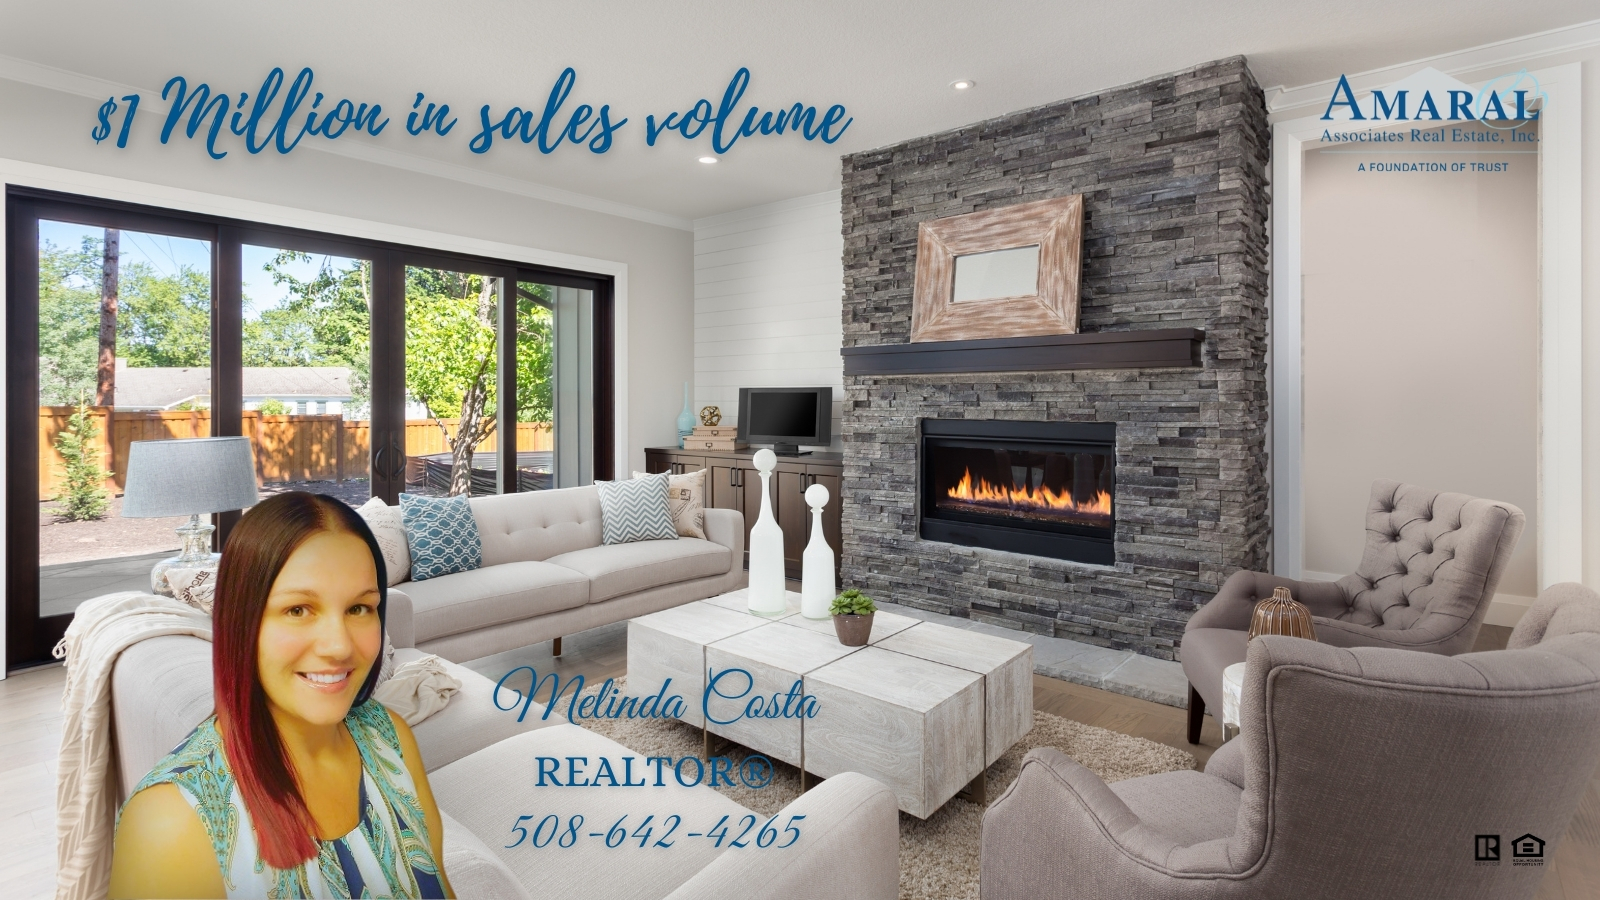 Congratulations to Melinda Costa for reaching this new milestone in 2021!